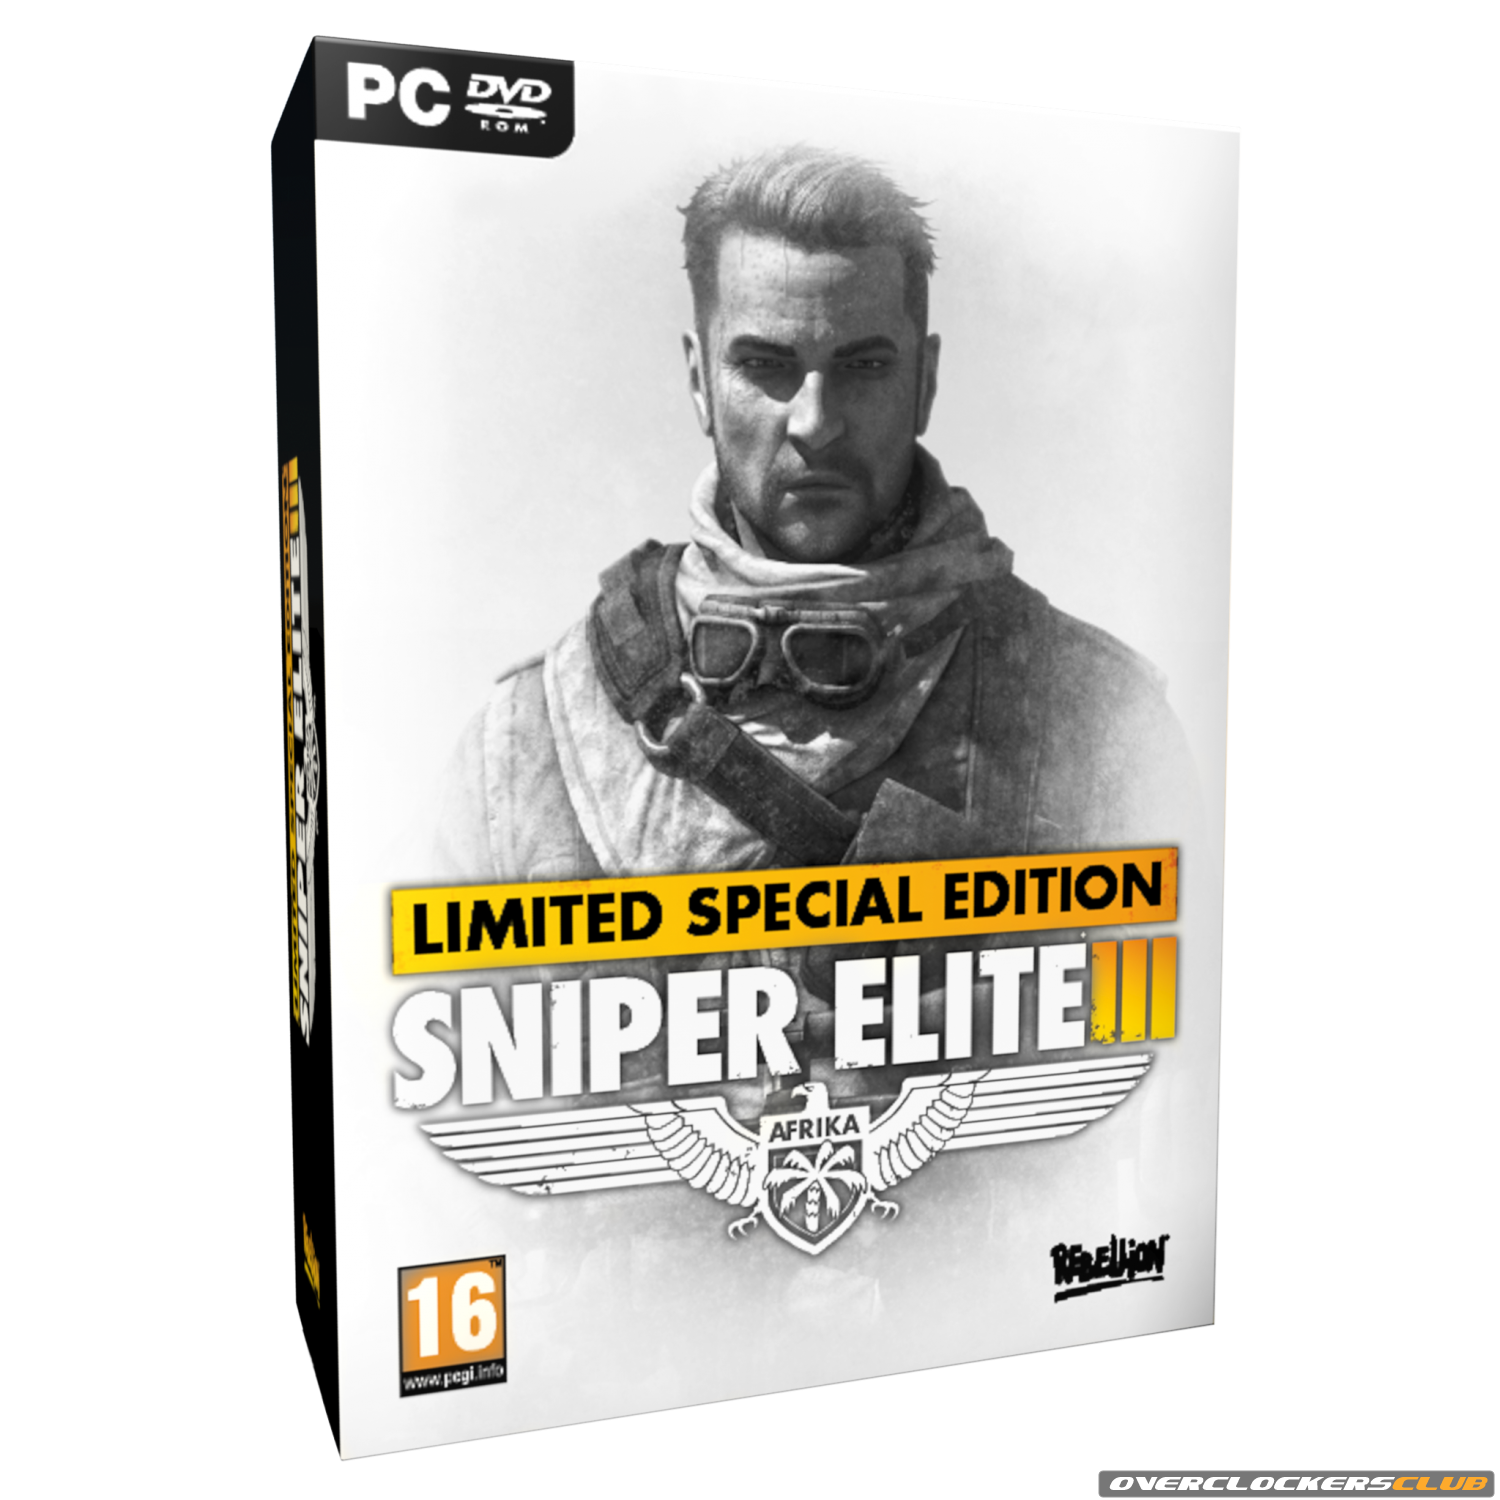 Sniper Elite 3 Gets a Limited Special Edition Exclusively for PC; Only 1000 Made